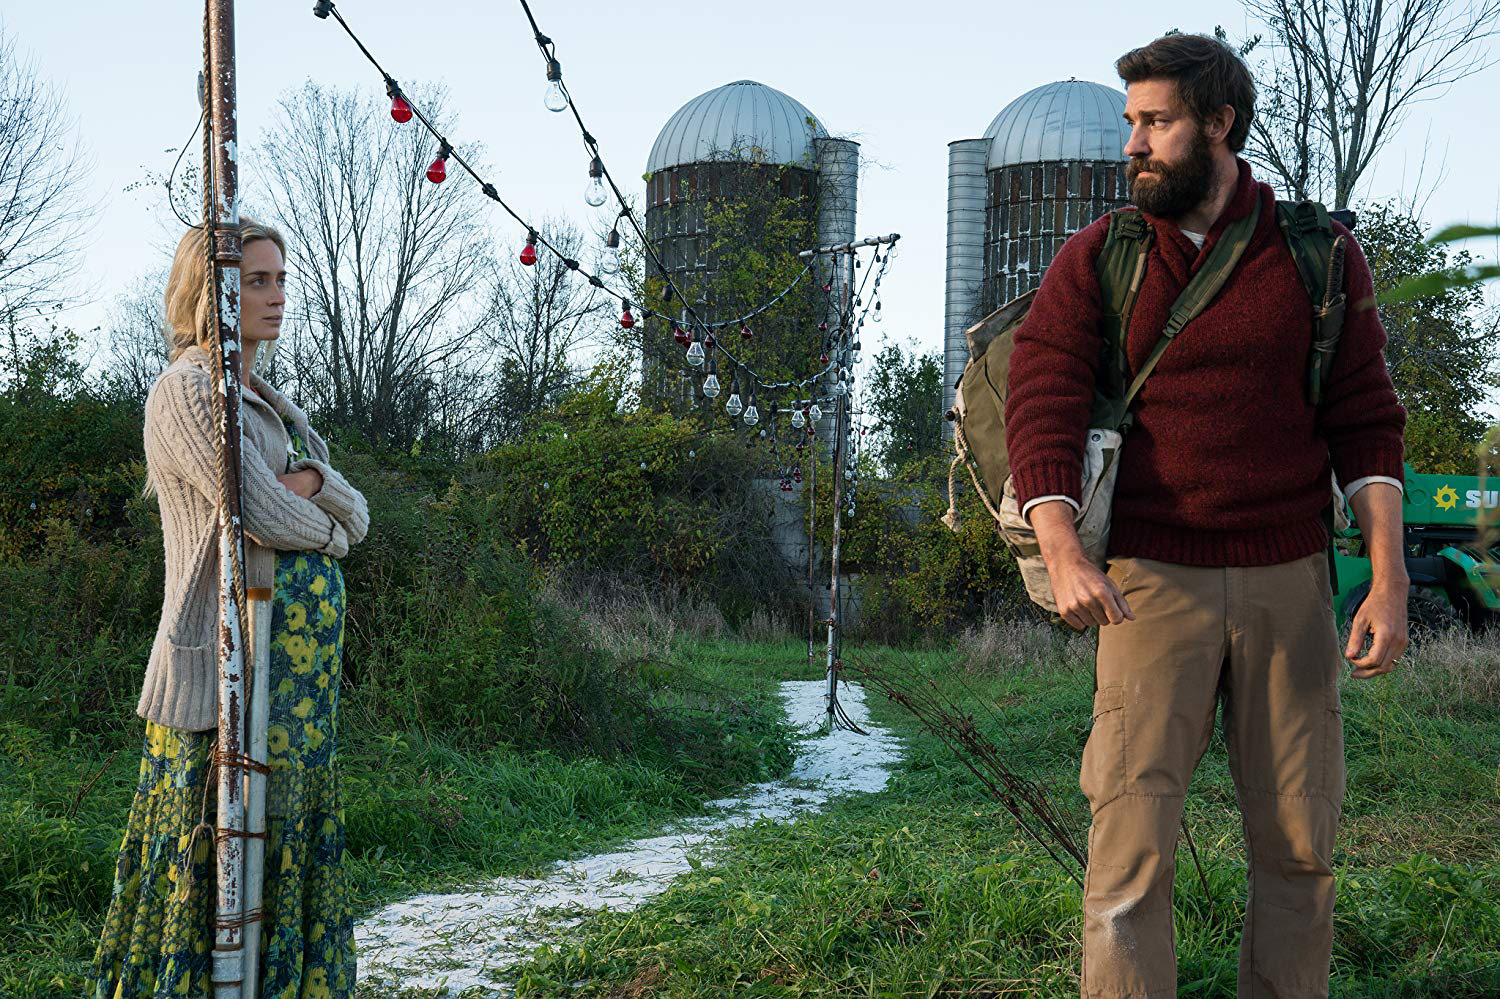 Emily Blunt and John Krasinski in the Paramount Pictures release A Quiet Place